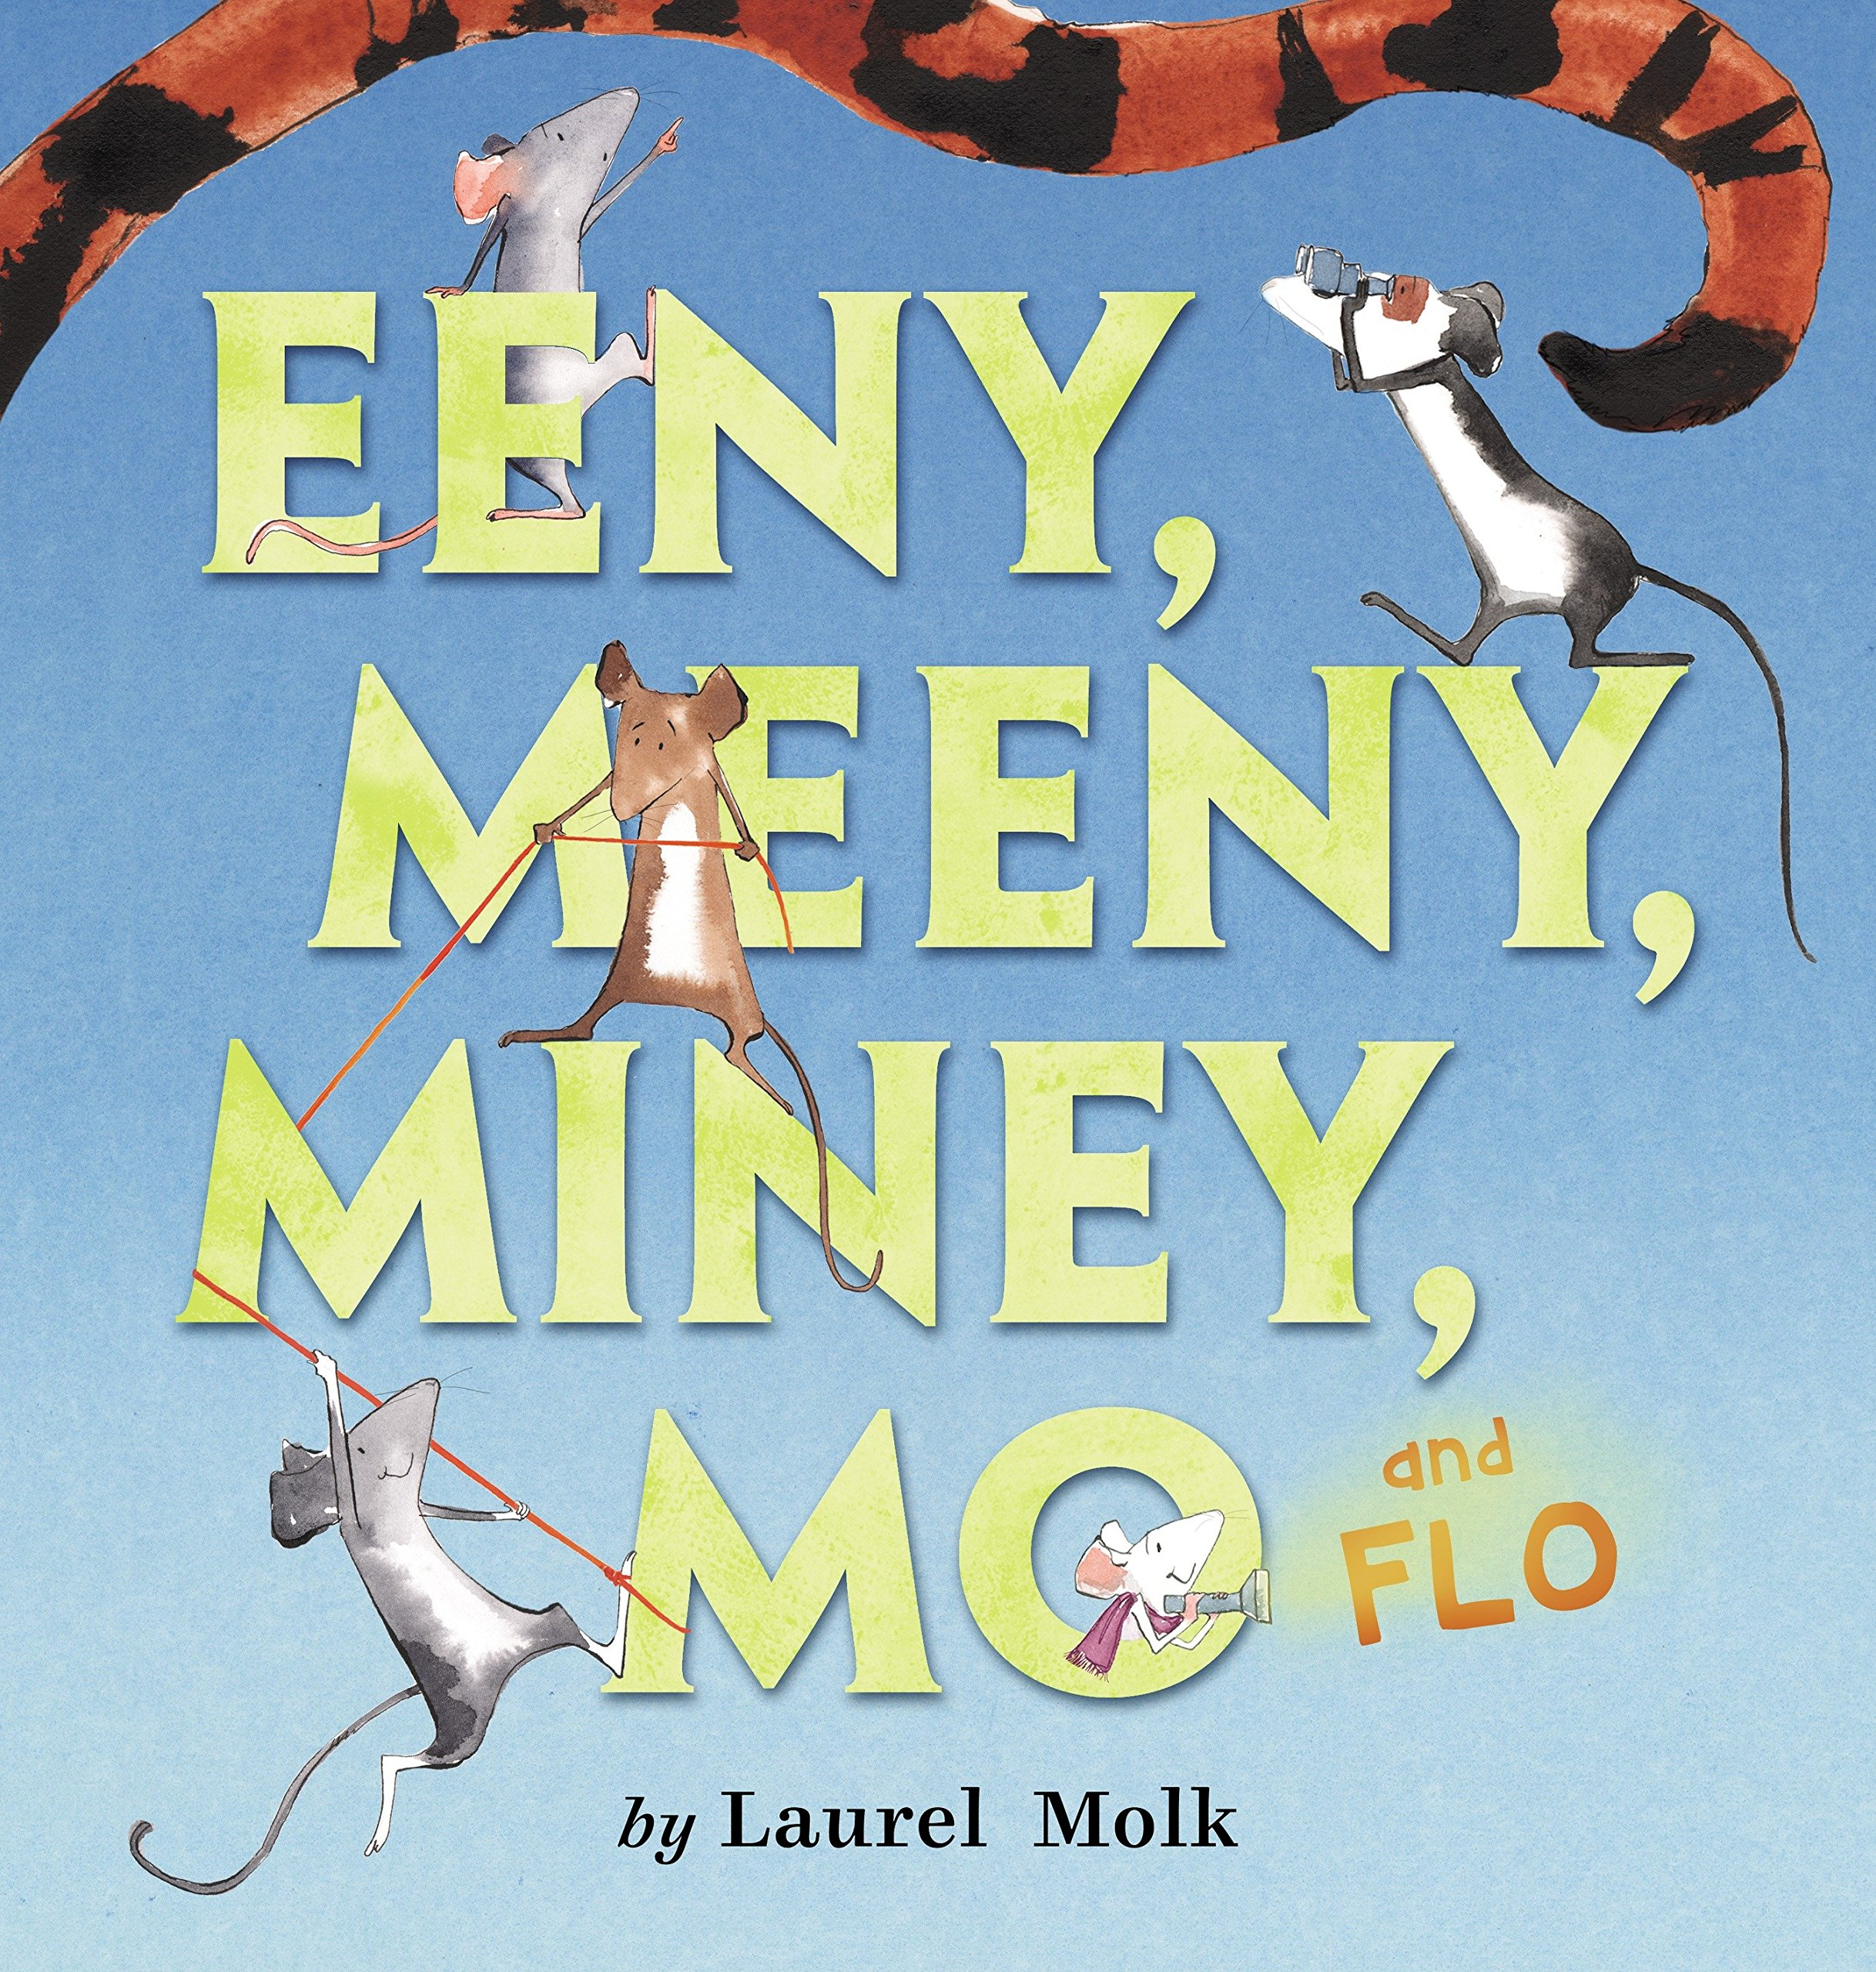 Eeny, Meeny, Miney, Mo, and FLO! Hardcover – Jun 9 2015